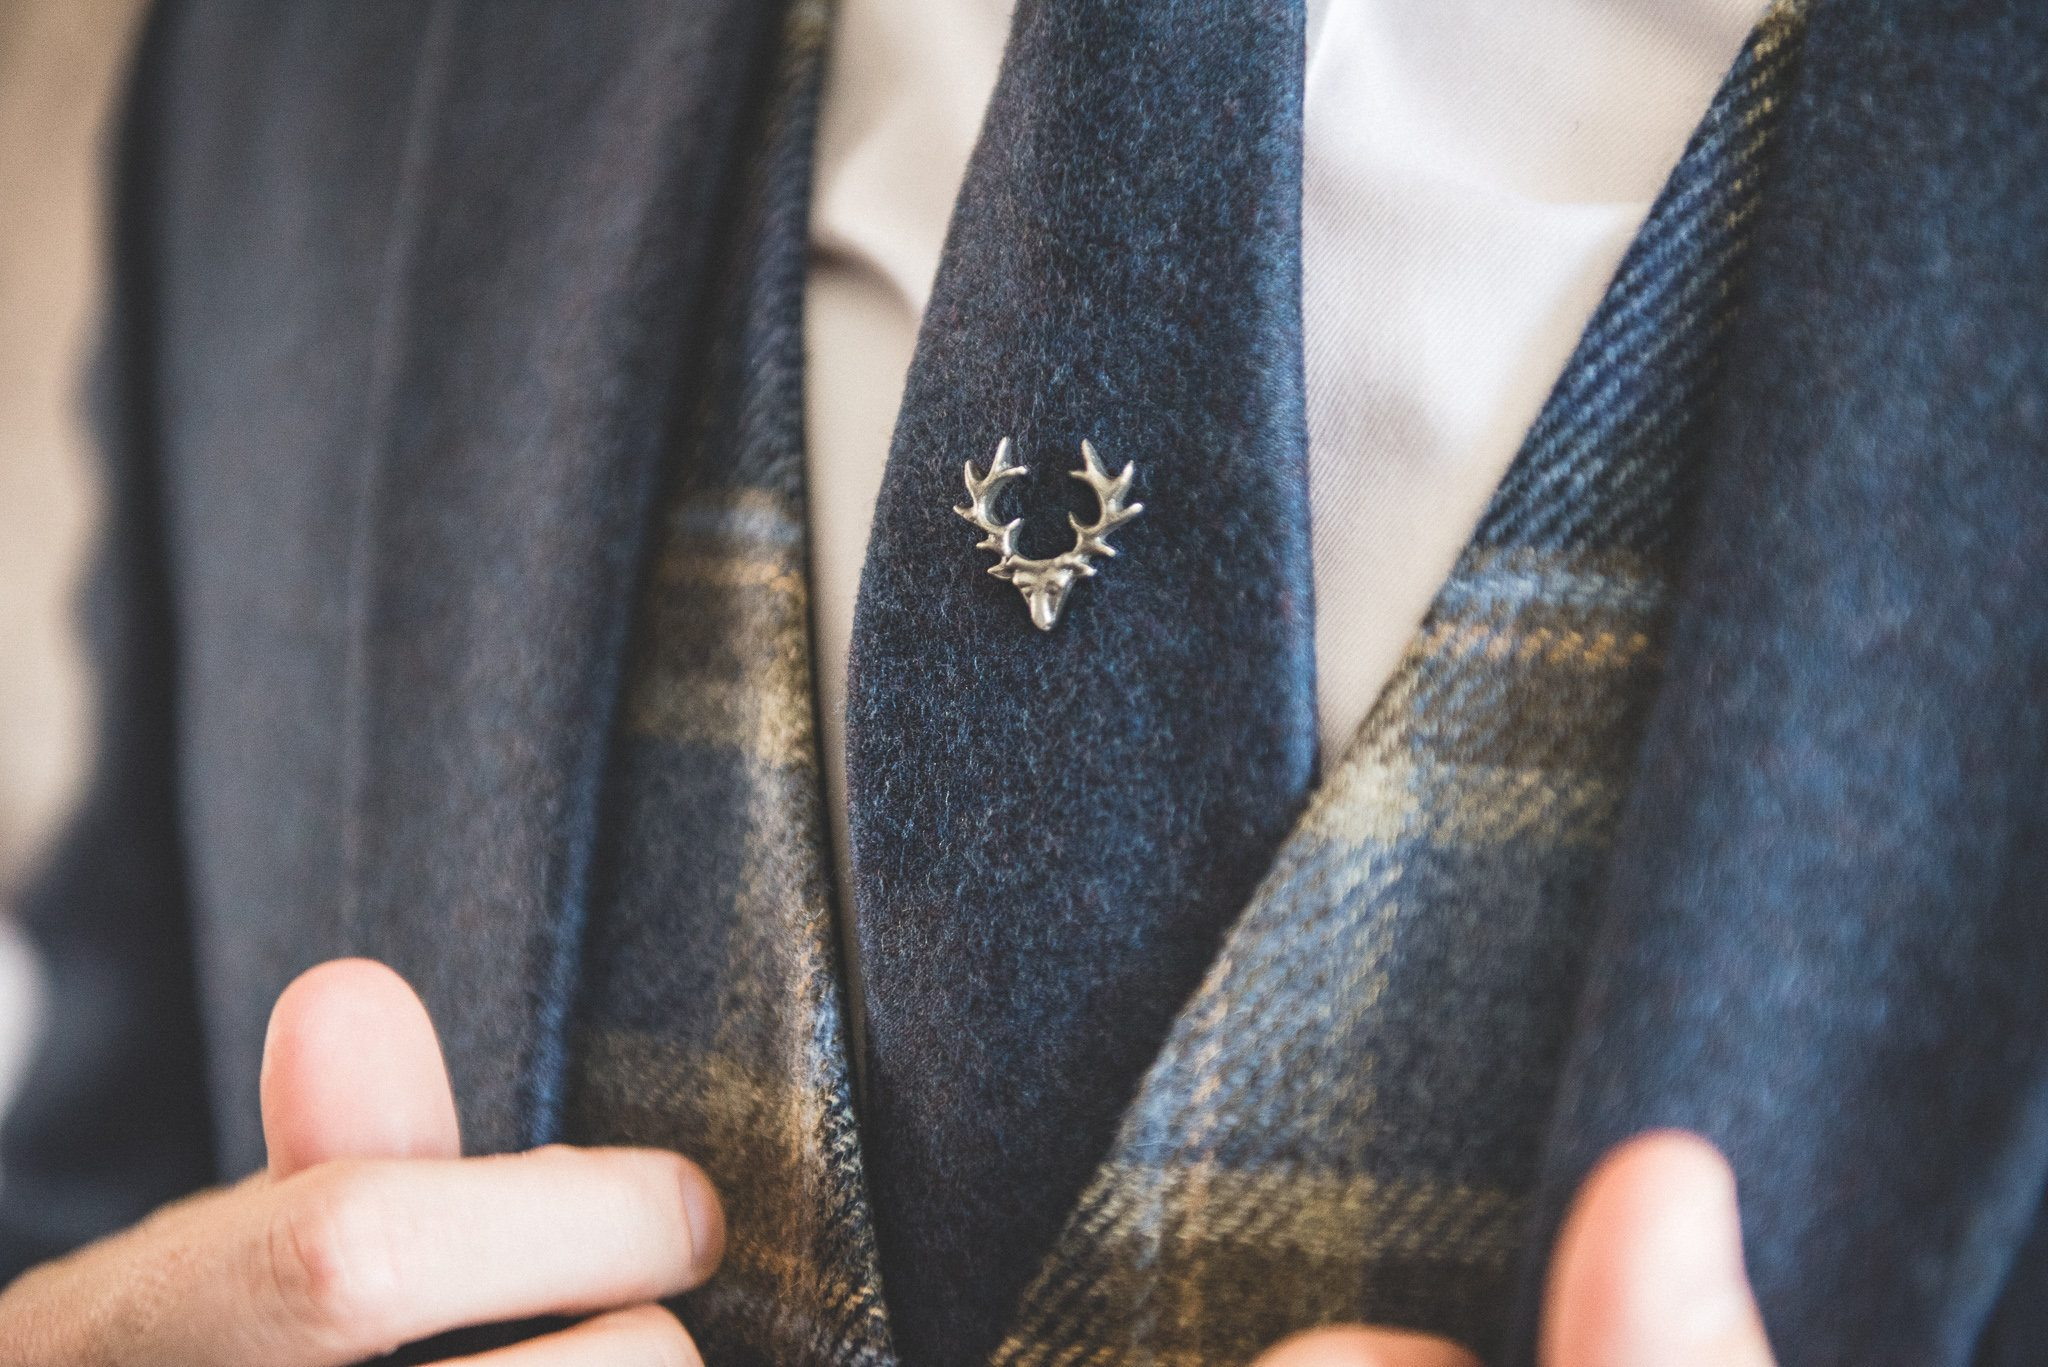 A close up of the silver stag pin on Philip's blue woollen tie